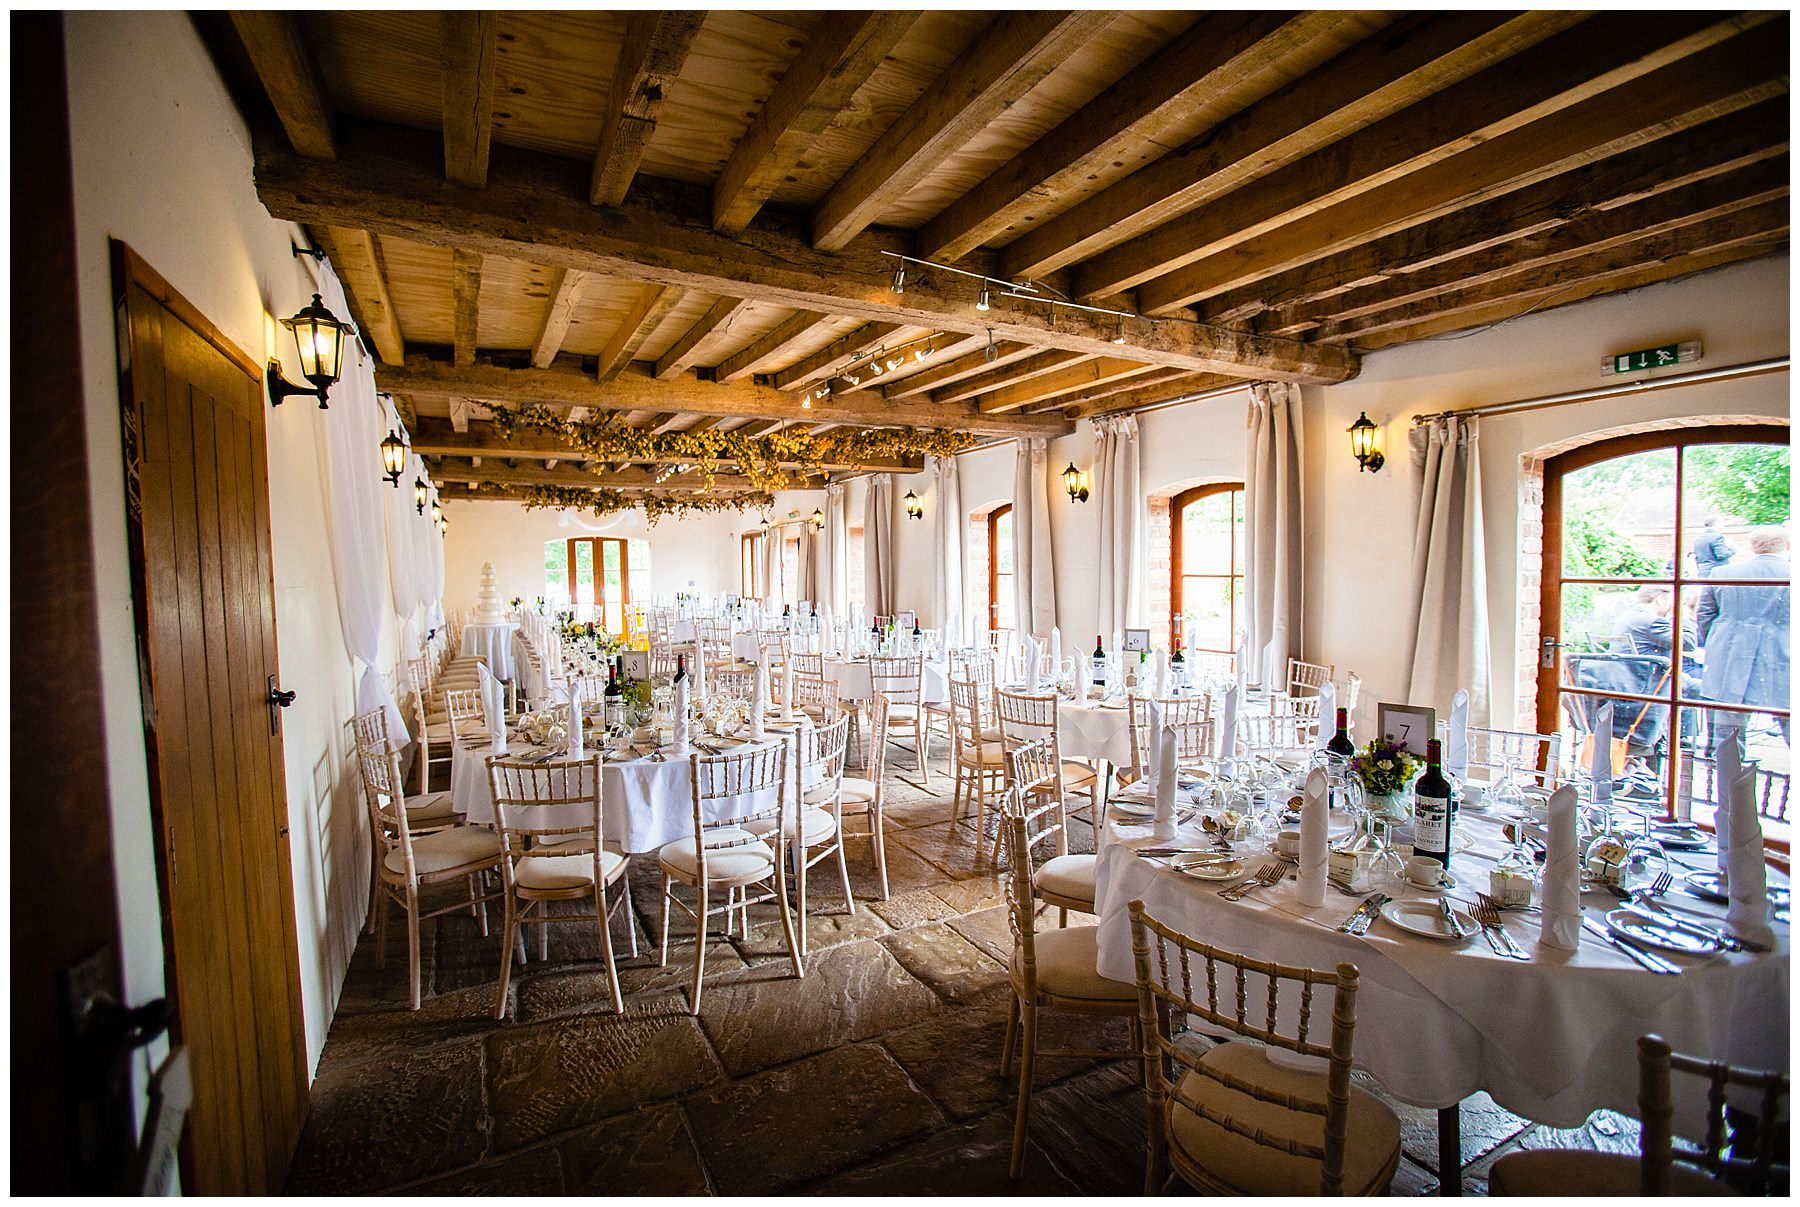 soulton hall wedding breakfast all set up for guests to come in - best wedding venue shropshire